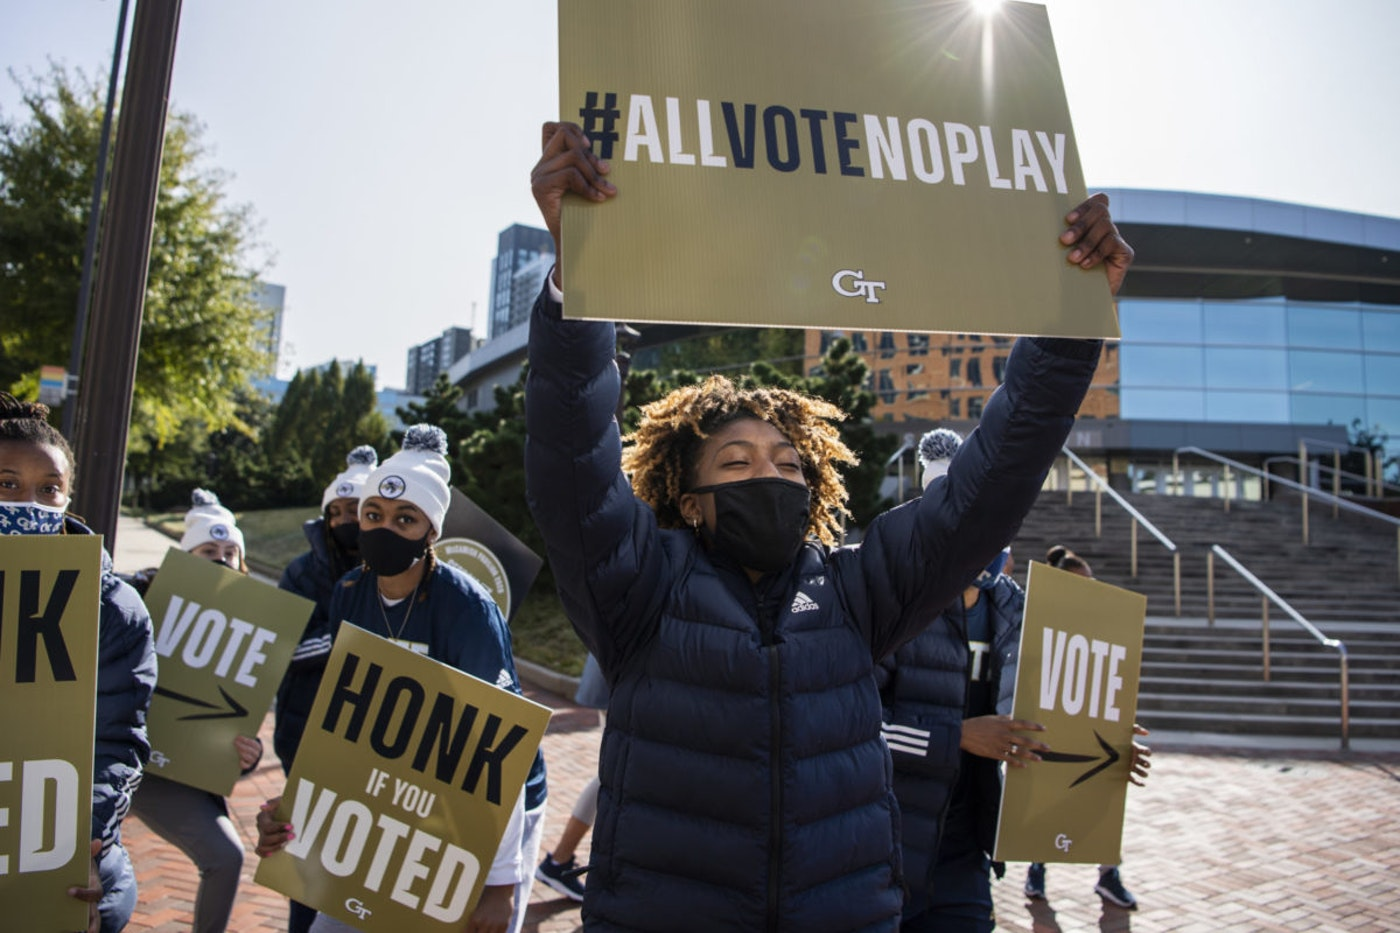 Members of the Georgia Tech Womens basketball team, hold voting signs outside of McCamish Pavillion which served as a polling place on Election Day in Atlanta, Ga., on Tuesday, November 3, 2020. (Photo By Tom Williams/CQ-Roll Call, Inc via Getty Images)